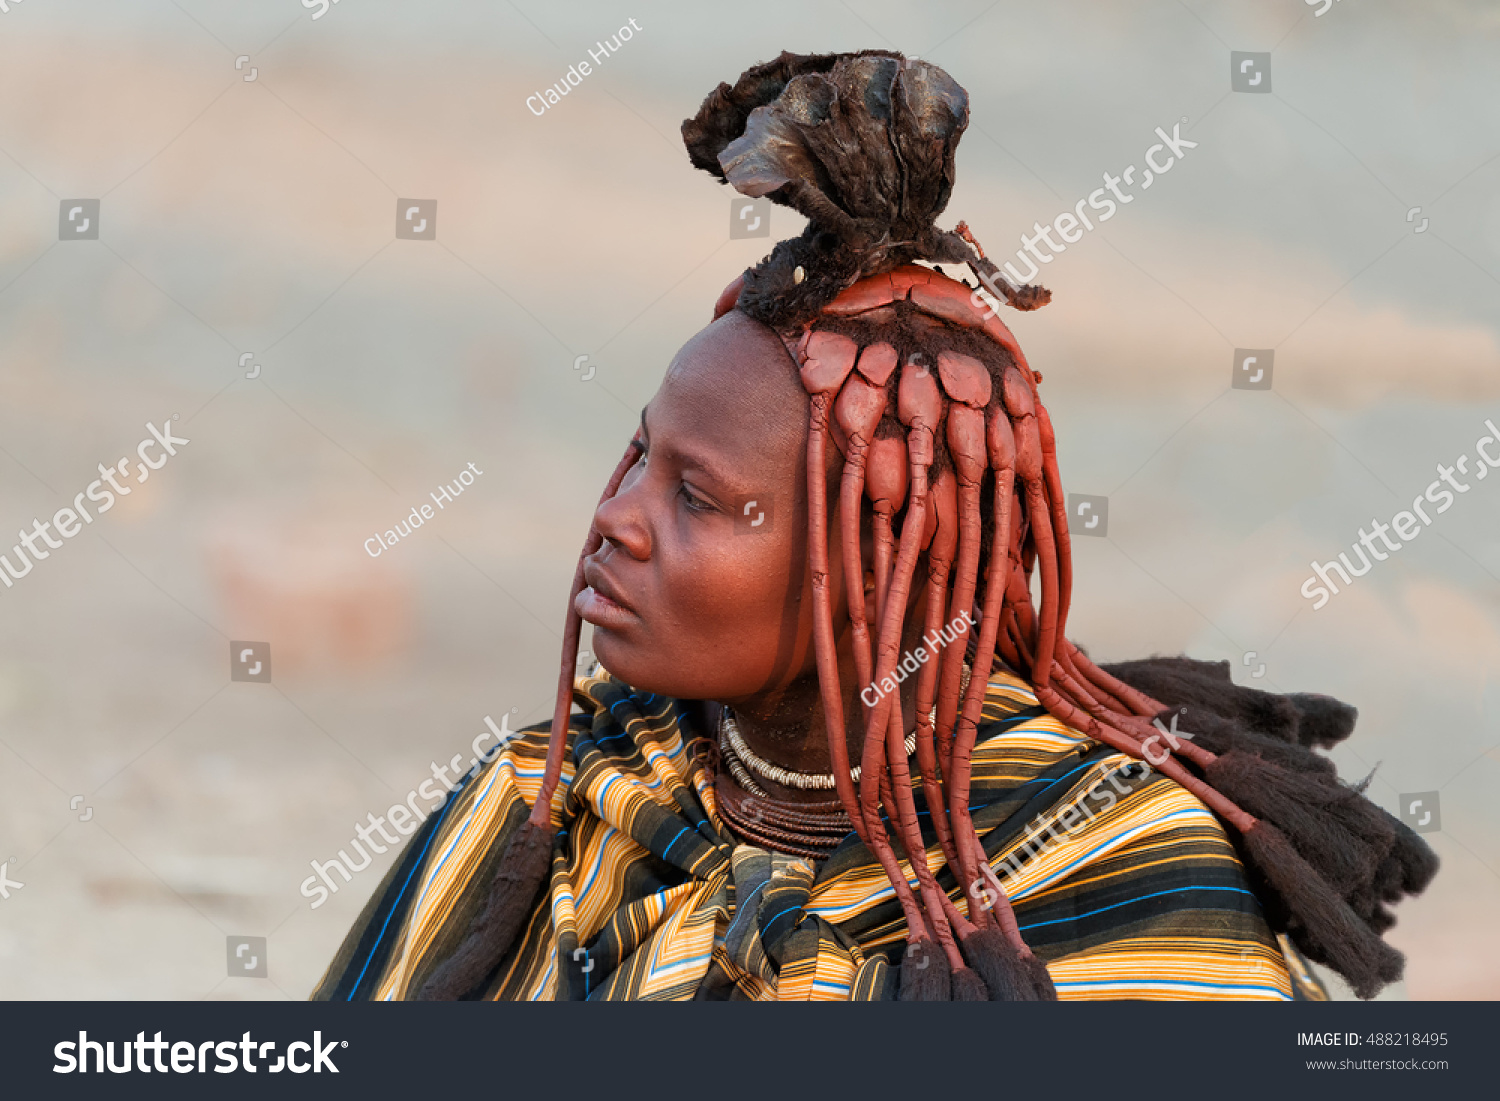 OMBIKA, NAMIBIA - SEPTEMBER 5, 2016:  Himba woman with traditional hairstyle and red skin poses for money. The Himba women from Northern Namibia apply a red paste to their hair and body.